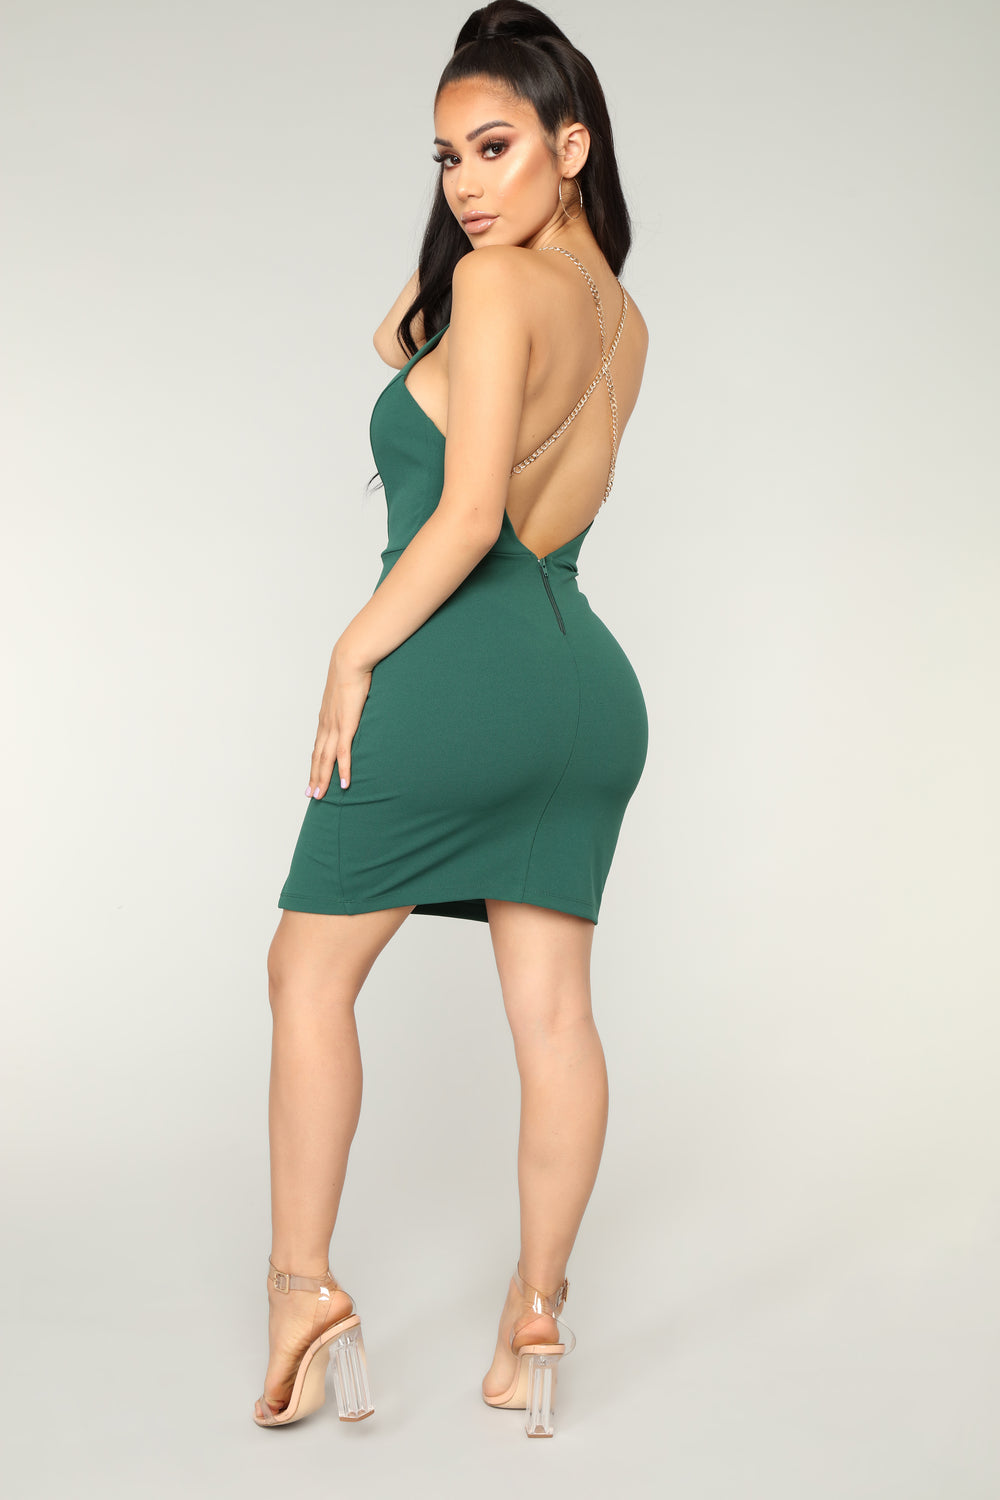 On The Way Out Dress - Hunter Green